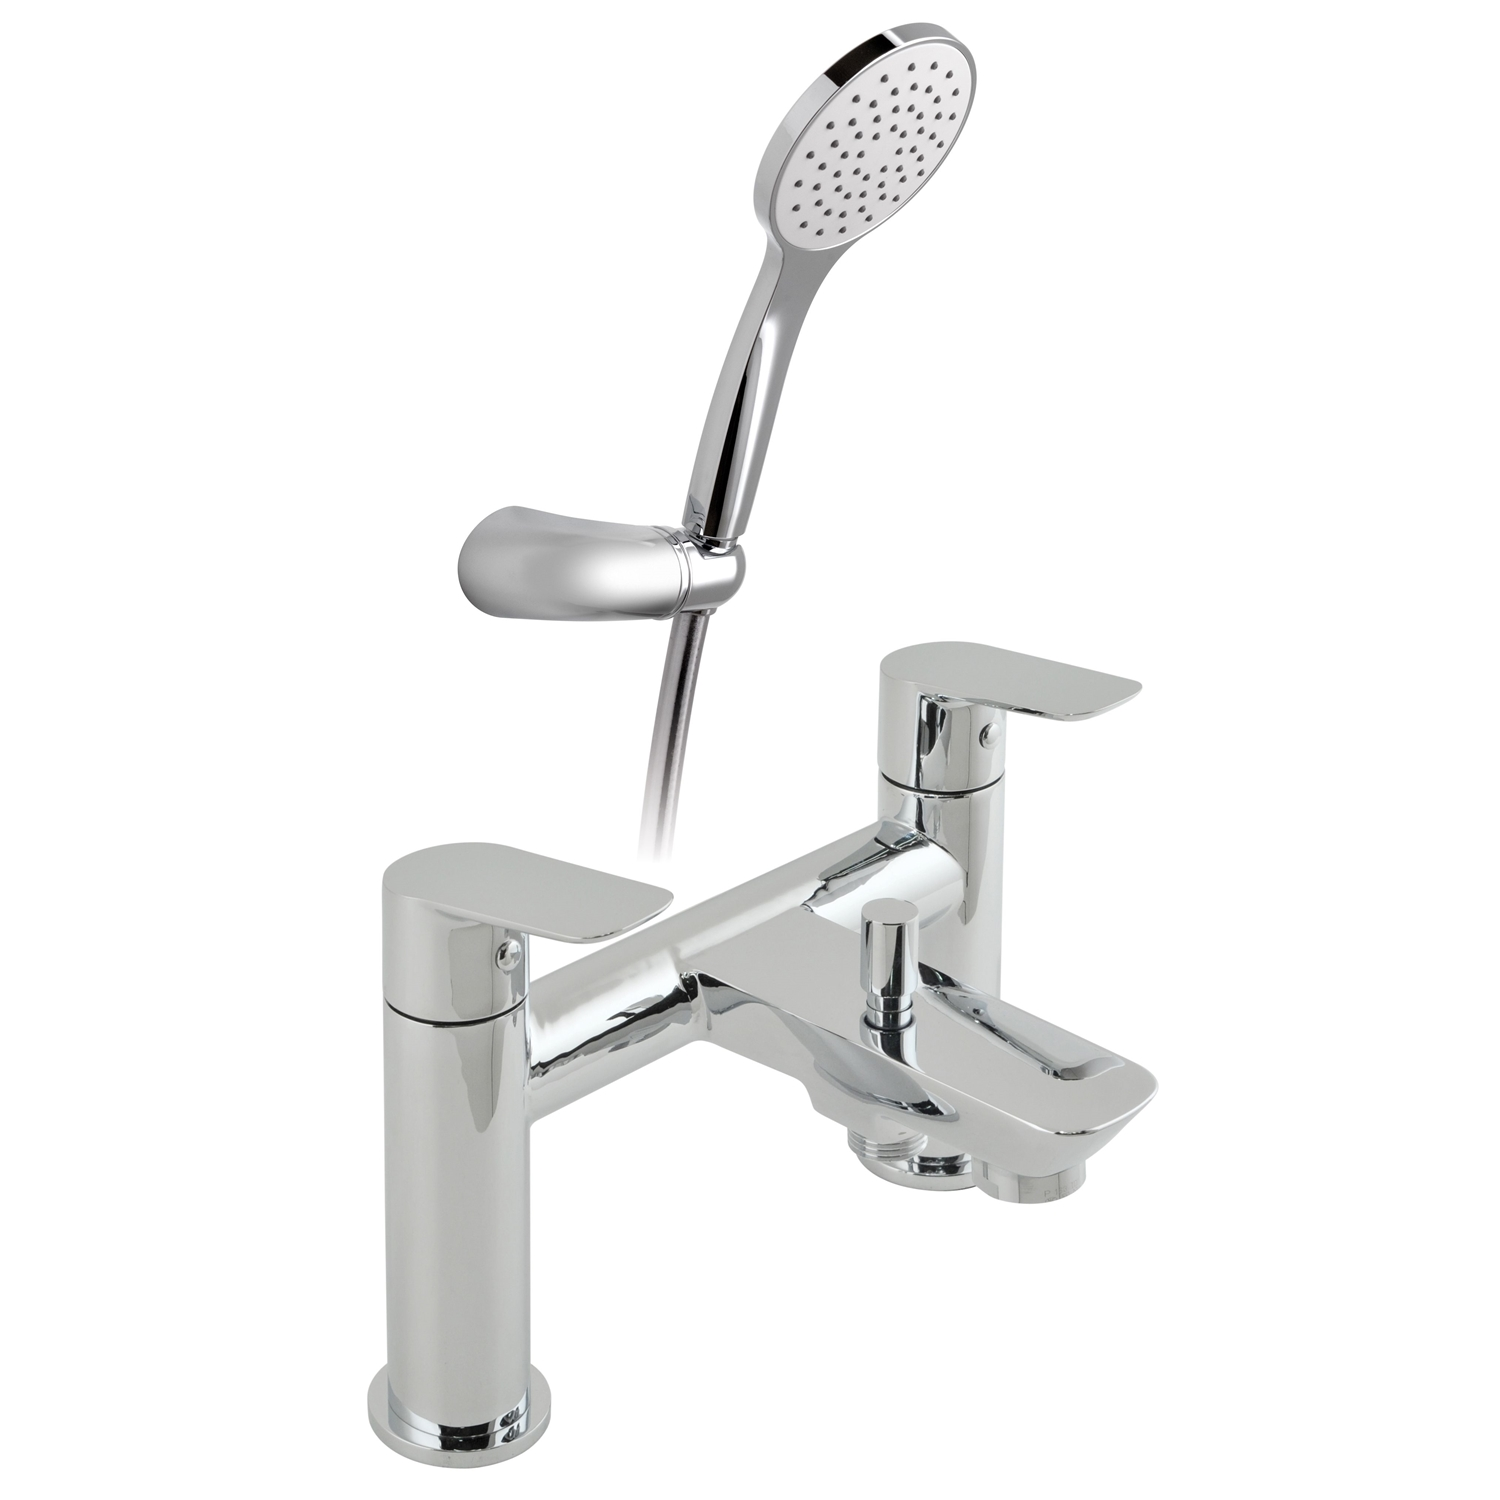 Image of Casa Panama 2 Hole Bath Shower Mixer, Chrome